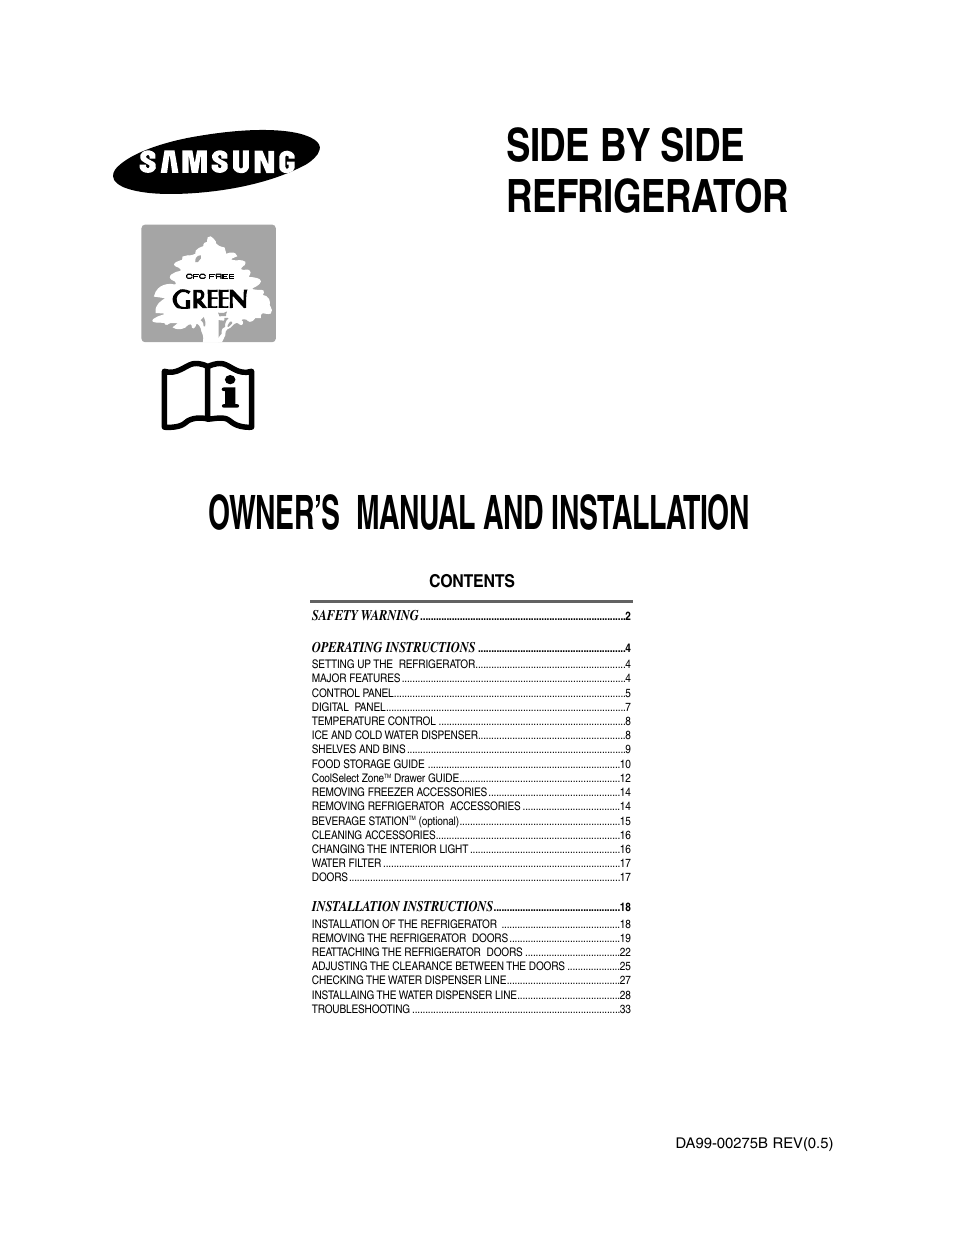 Samsung Model Rs27klmr User Manual 36 Pages Also For